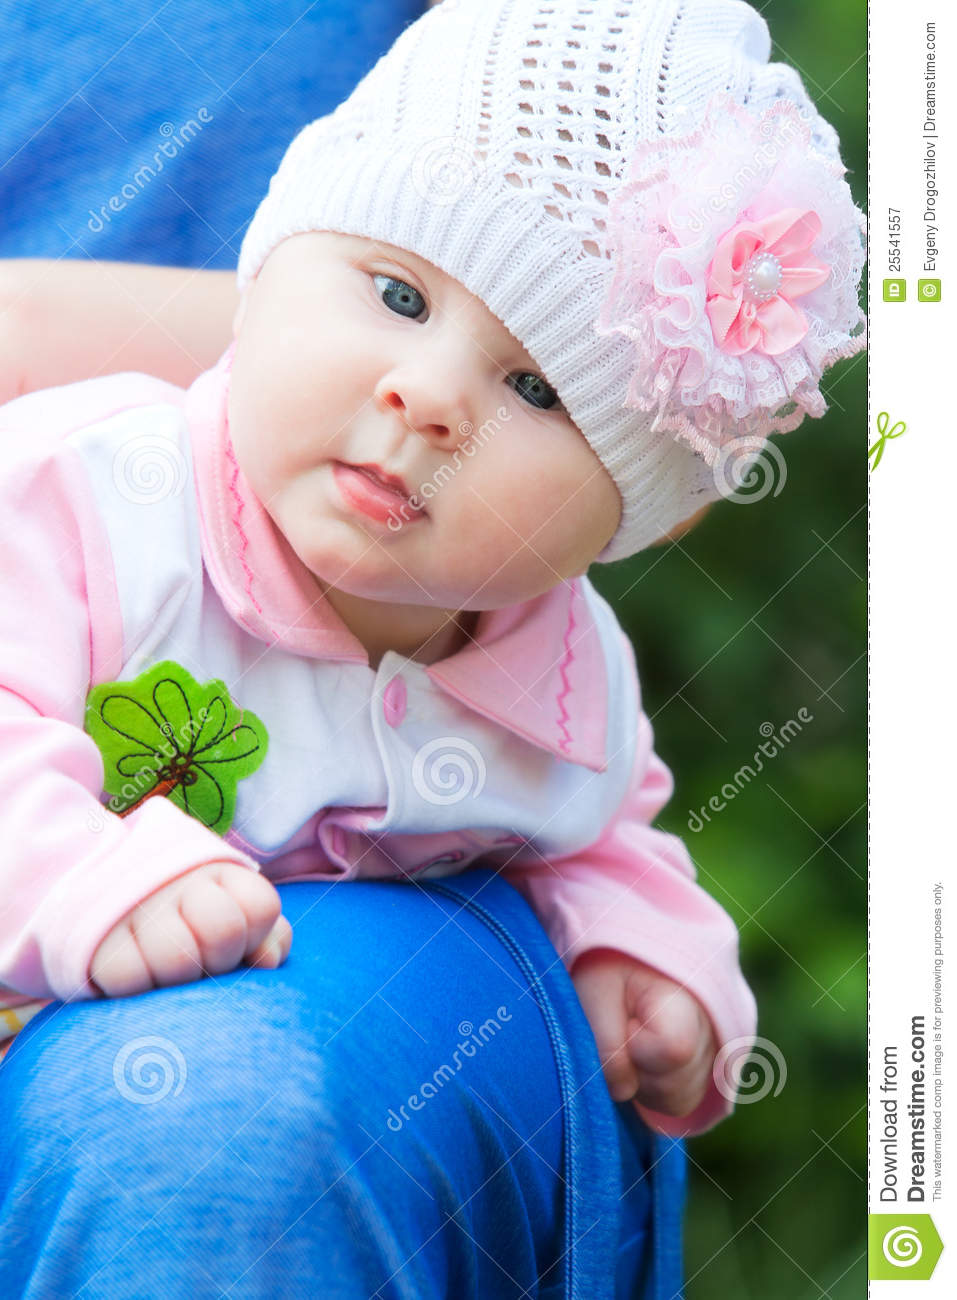 baby girl wearing knit hat with pink flower stock image - image of